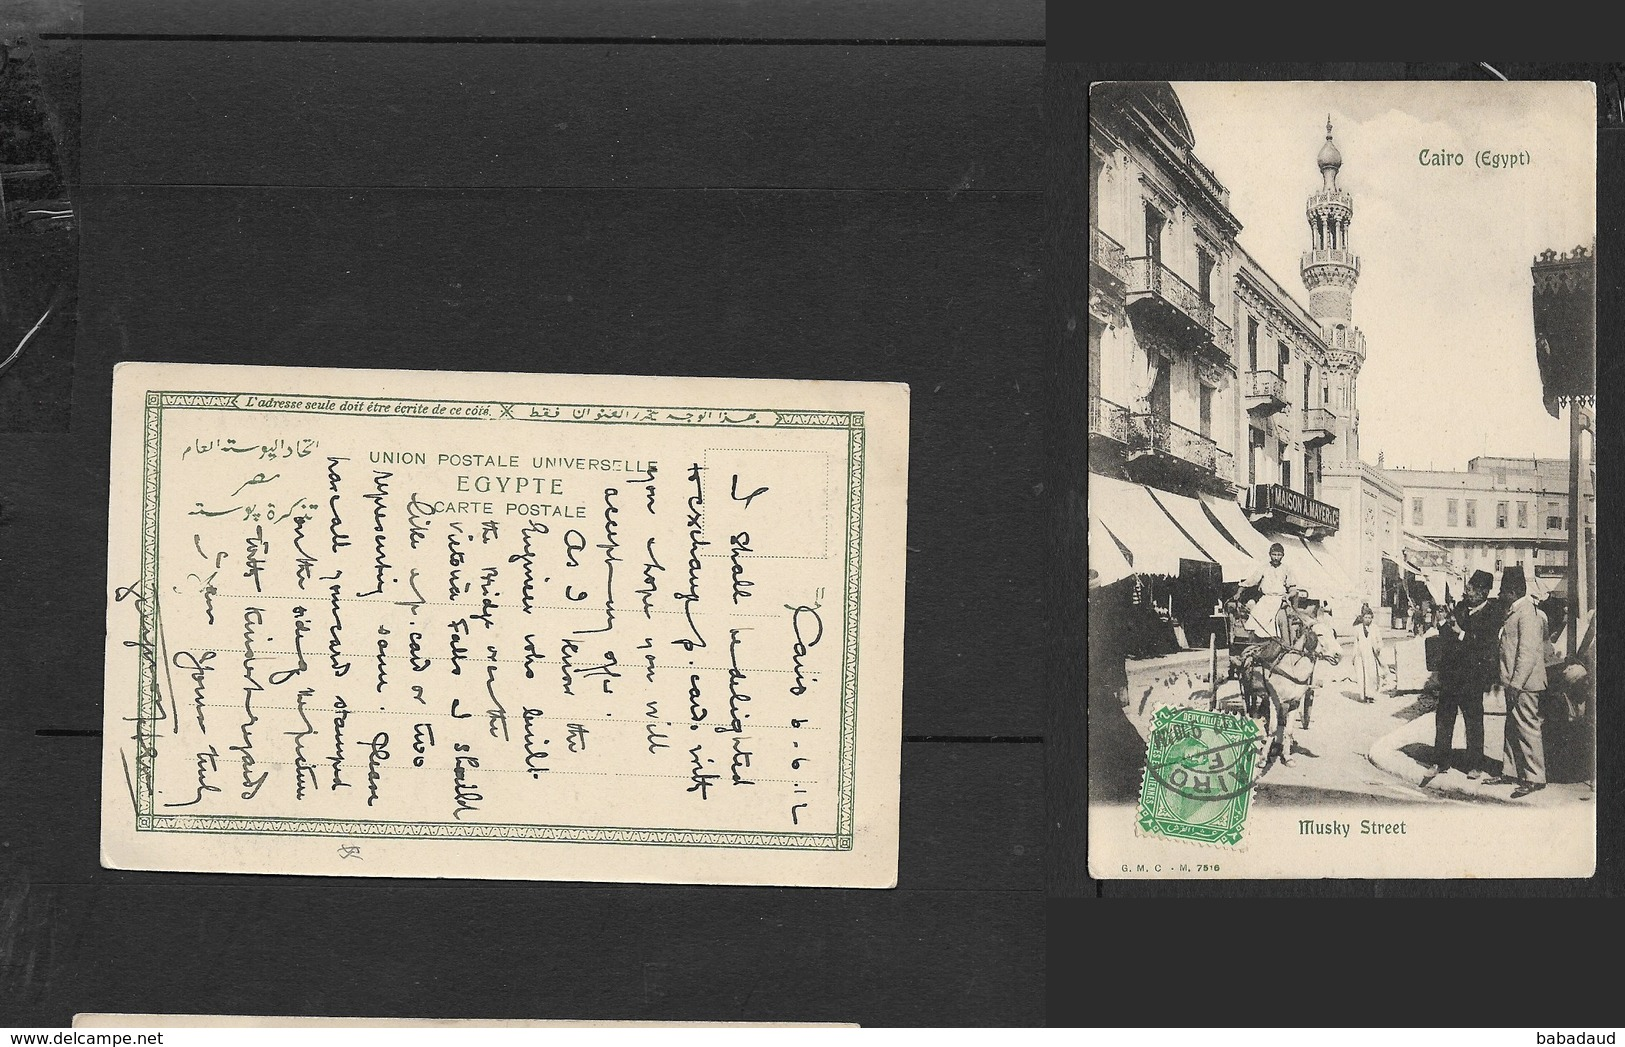 Egypt, Musky Street, Cairo,, Franked 2 Mils, CAIRO C.d.s. >not Posted - No Addressee - El Cairo